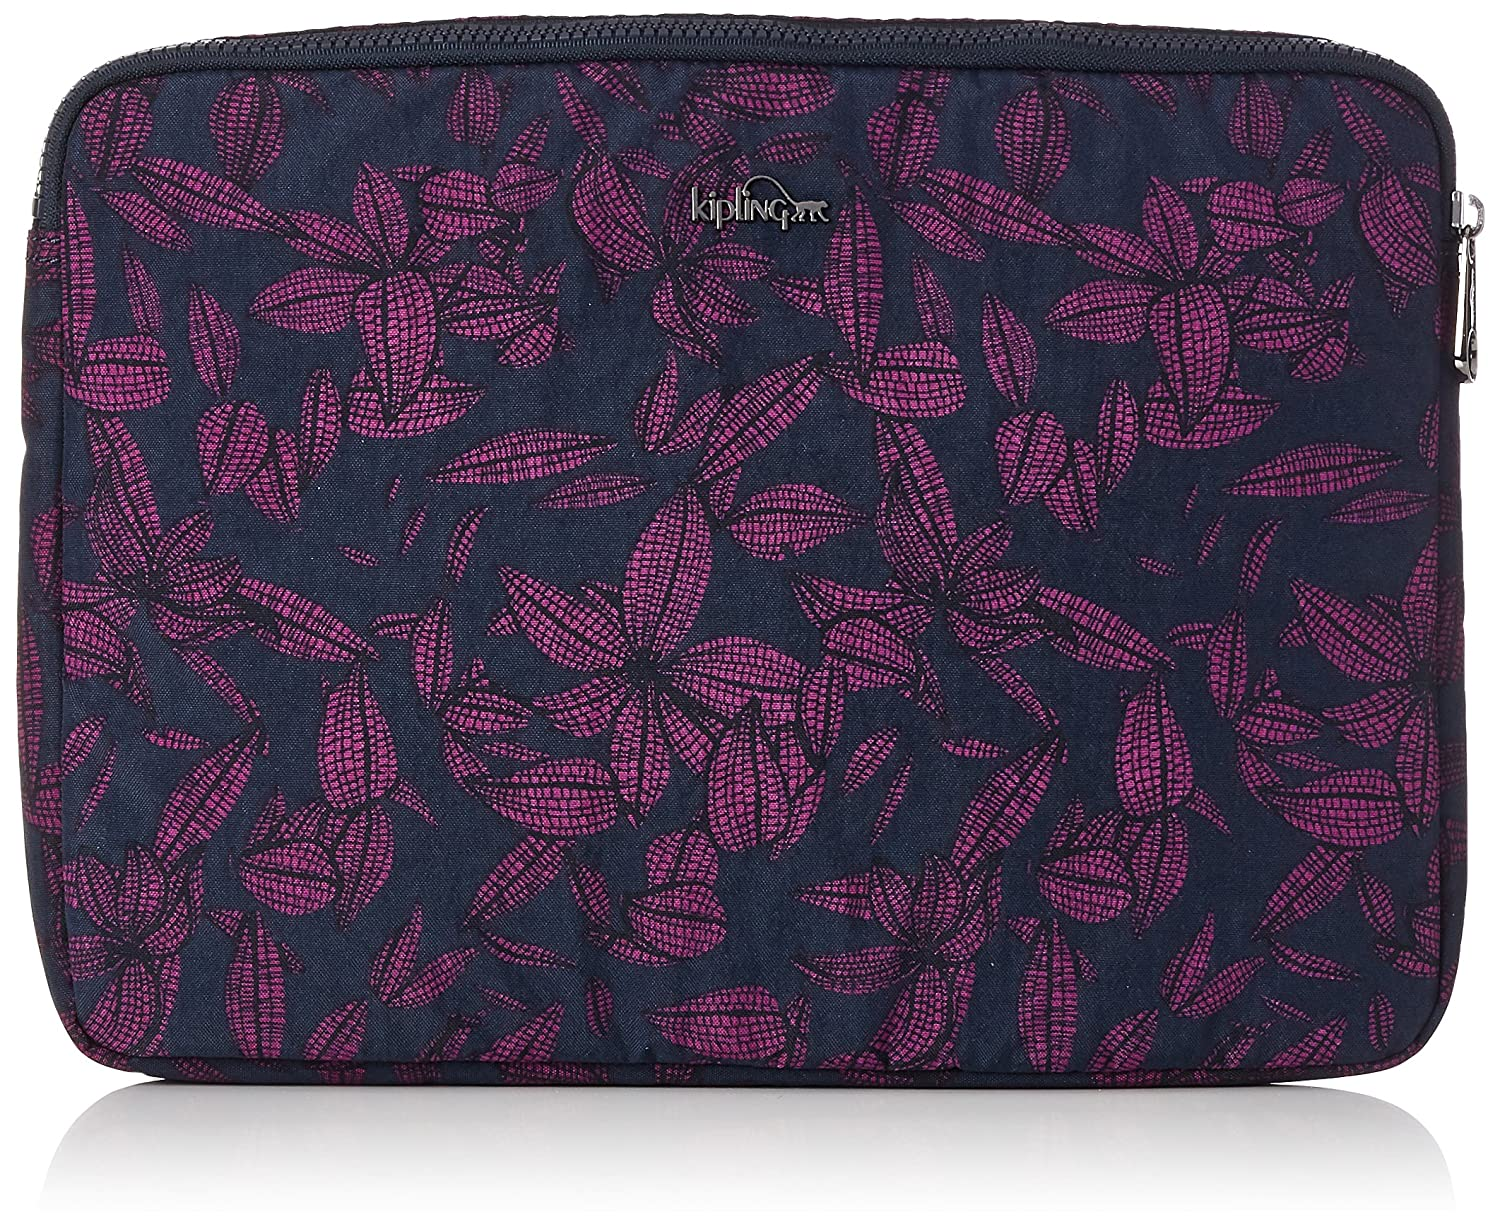 Amazon.com: Kipling - LAPTOP COVER 13 - Laptop cover ...